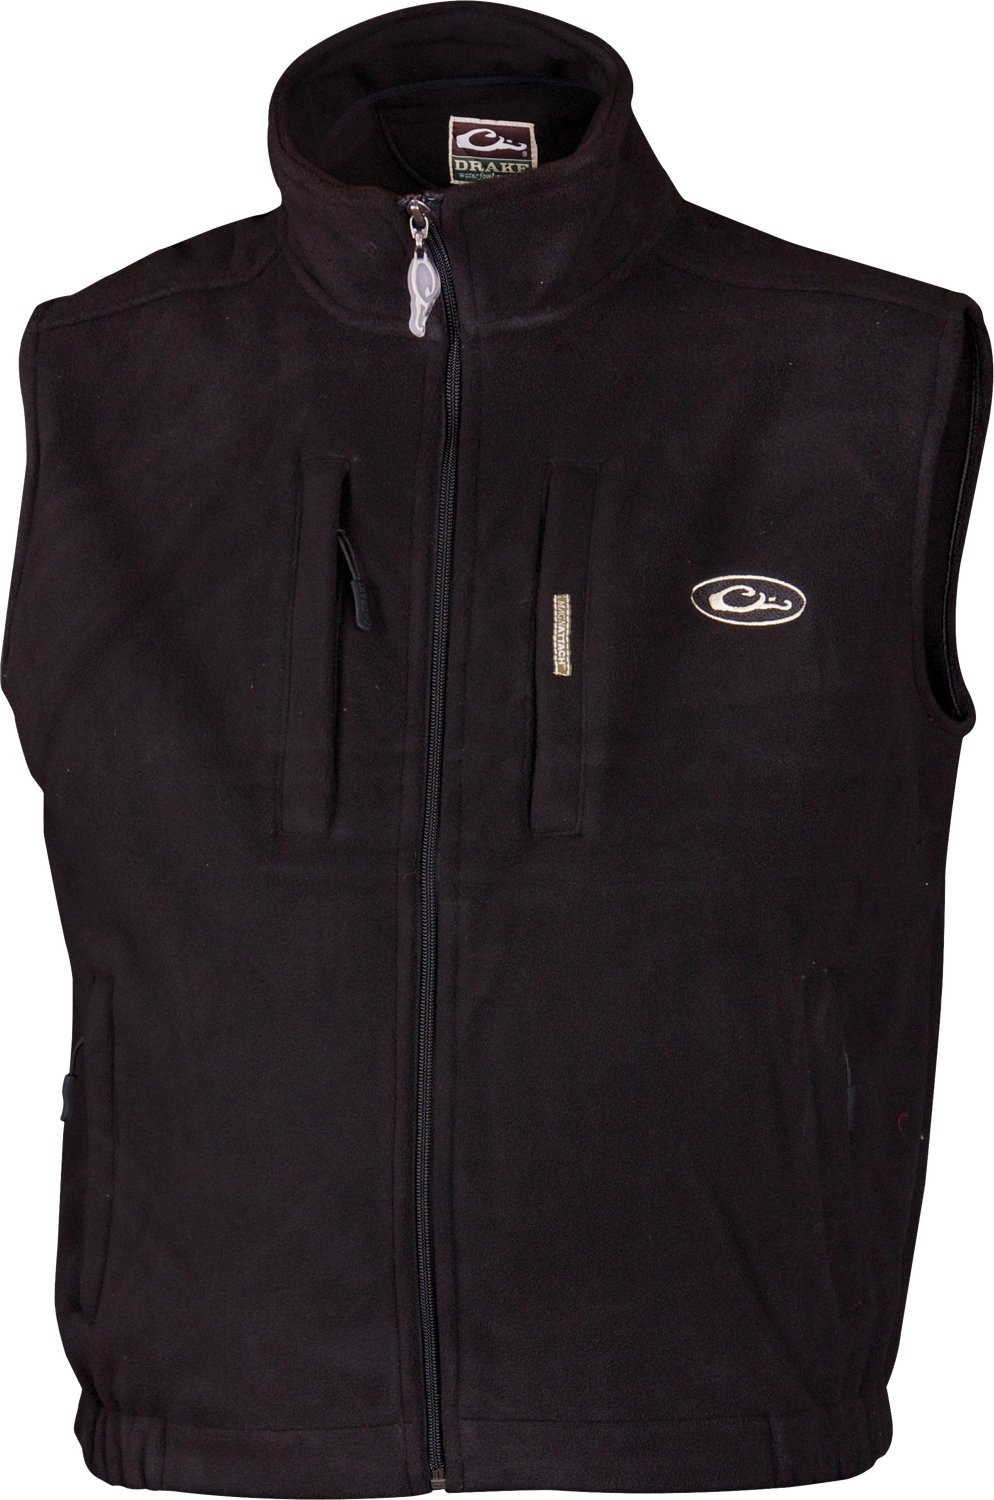 79892368ddf36 Display product reviews for Drake Waterfowl Men's MST Layering Vest